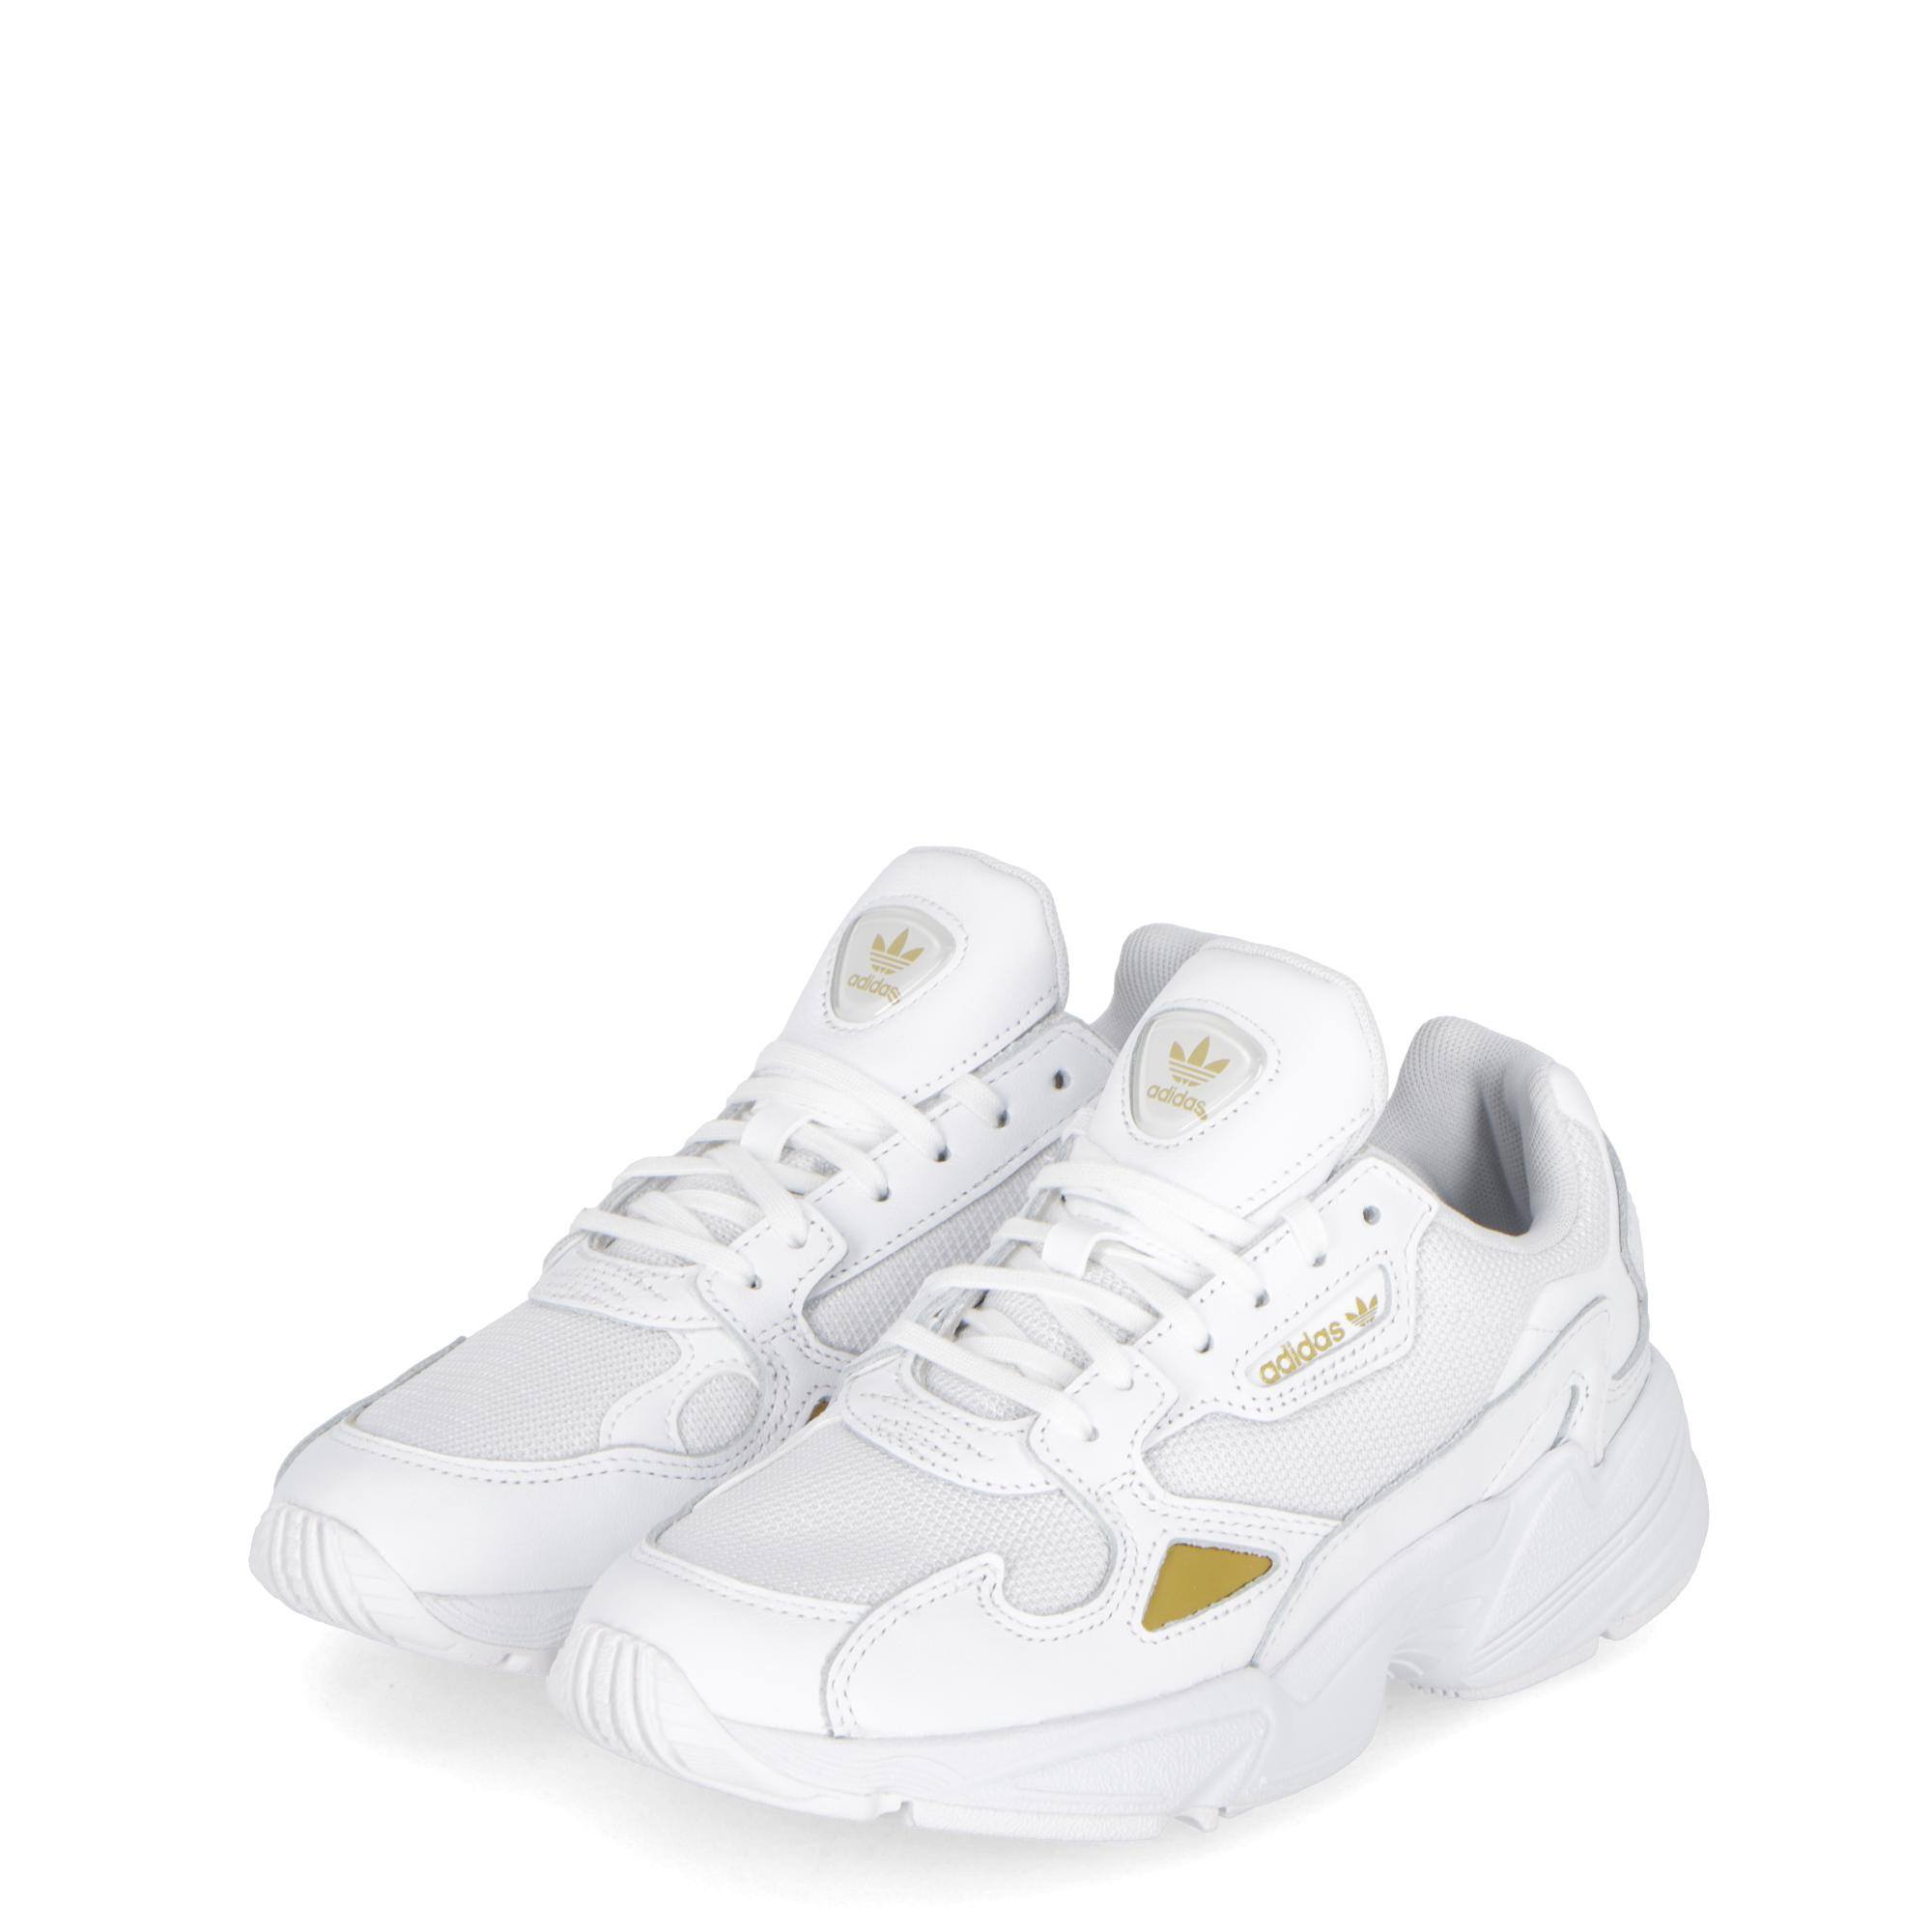 uk availability f3542 9a818 Adidas Falcon White white gold met